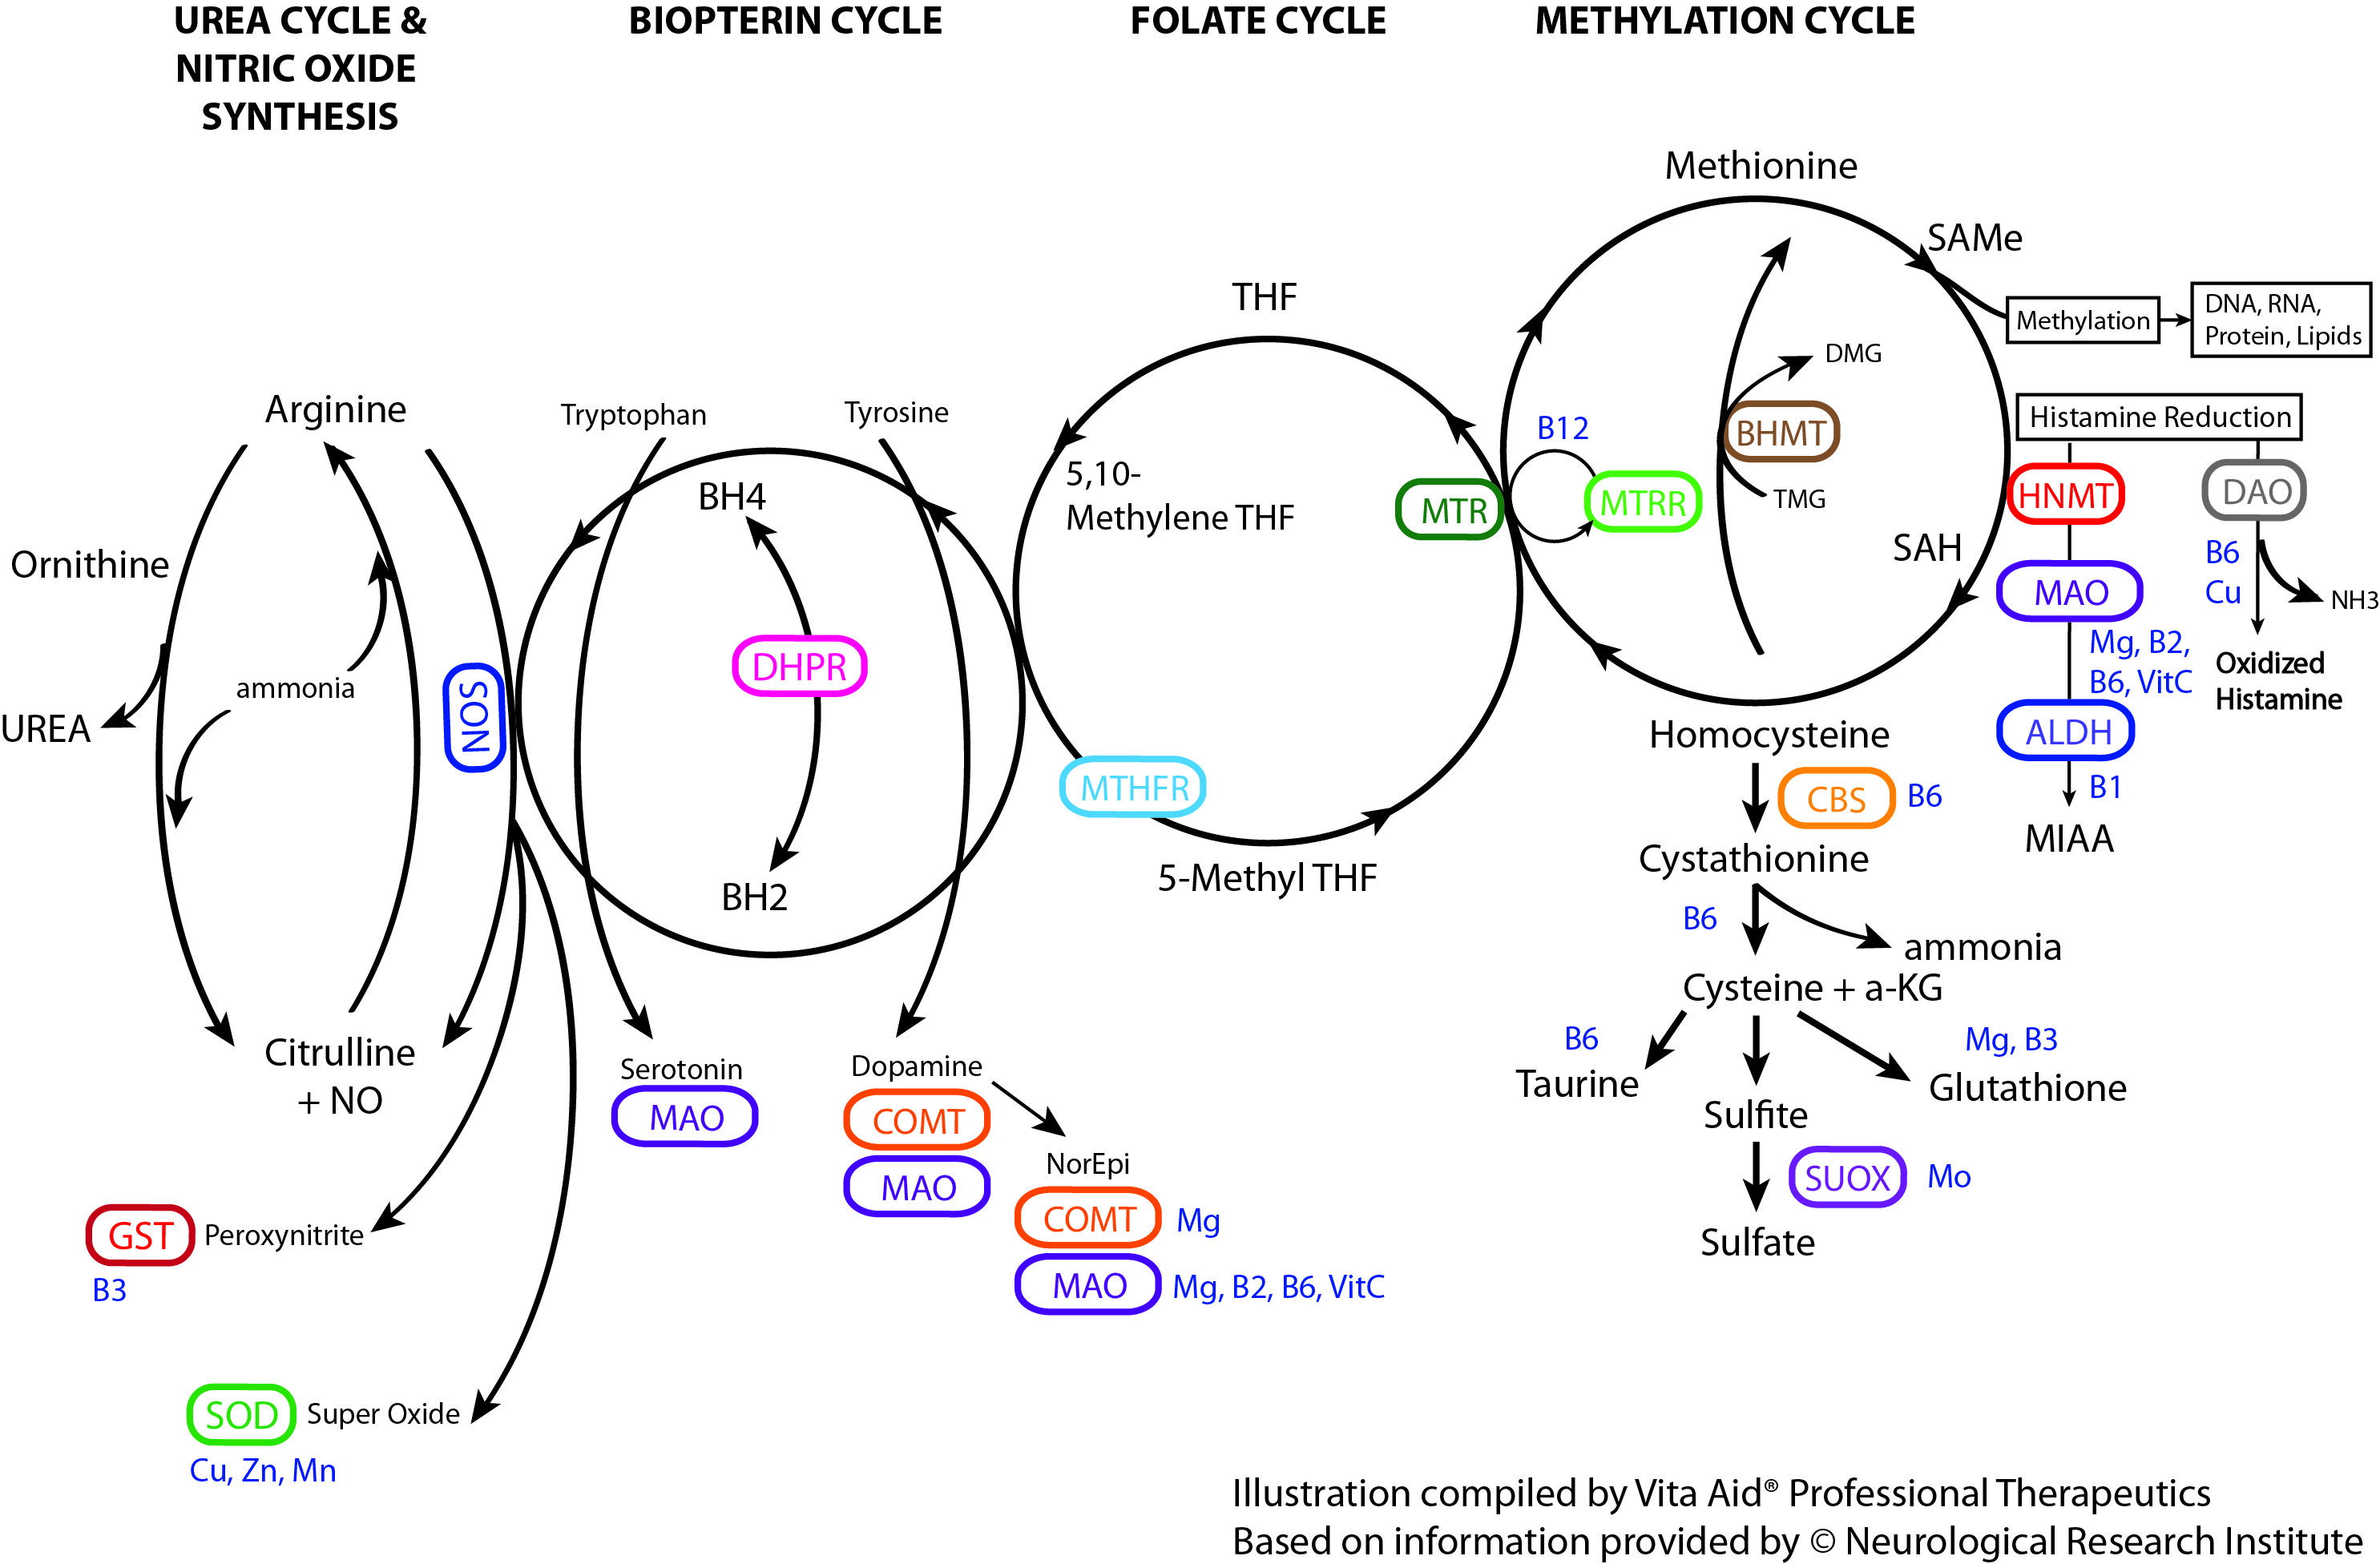 Methylation Cycle Collateral Pathways.jpg